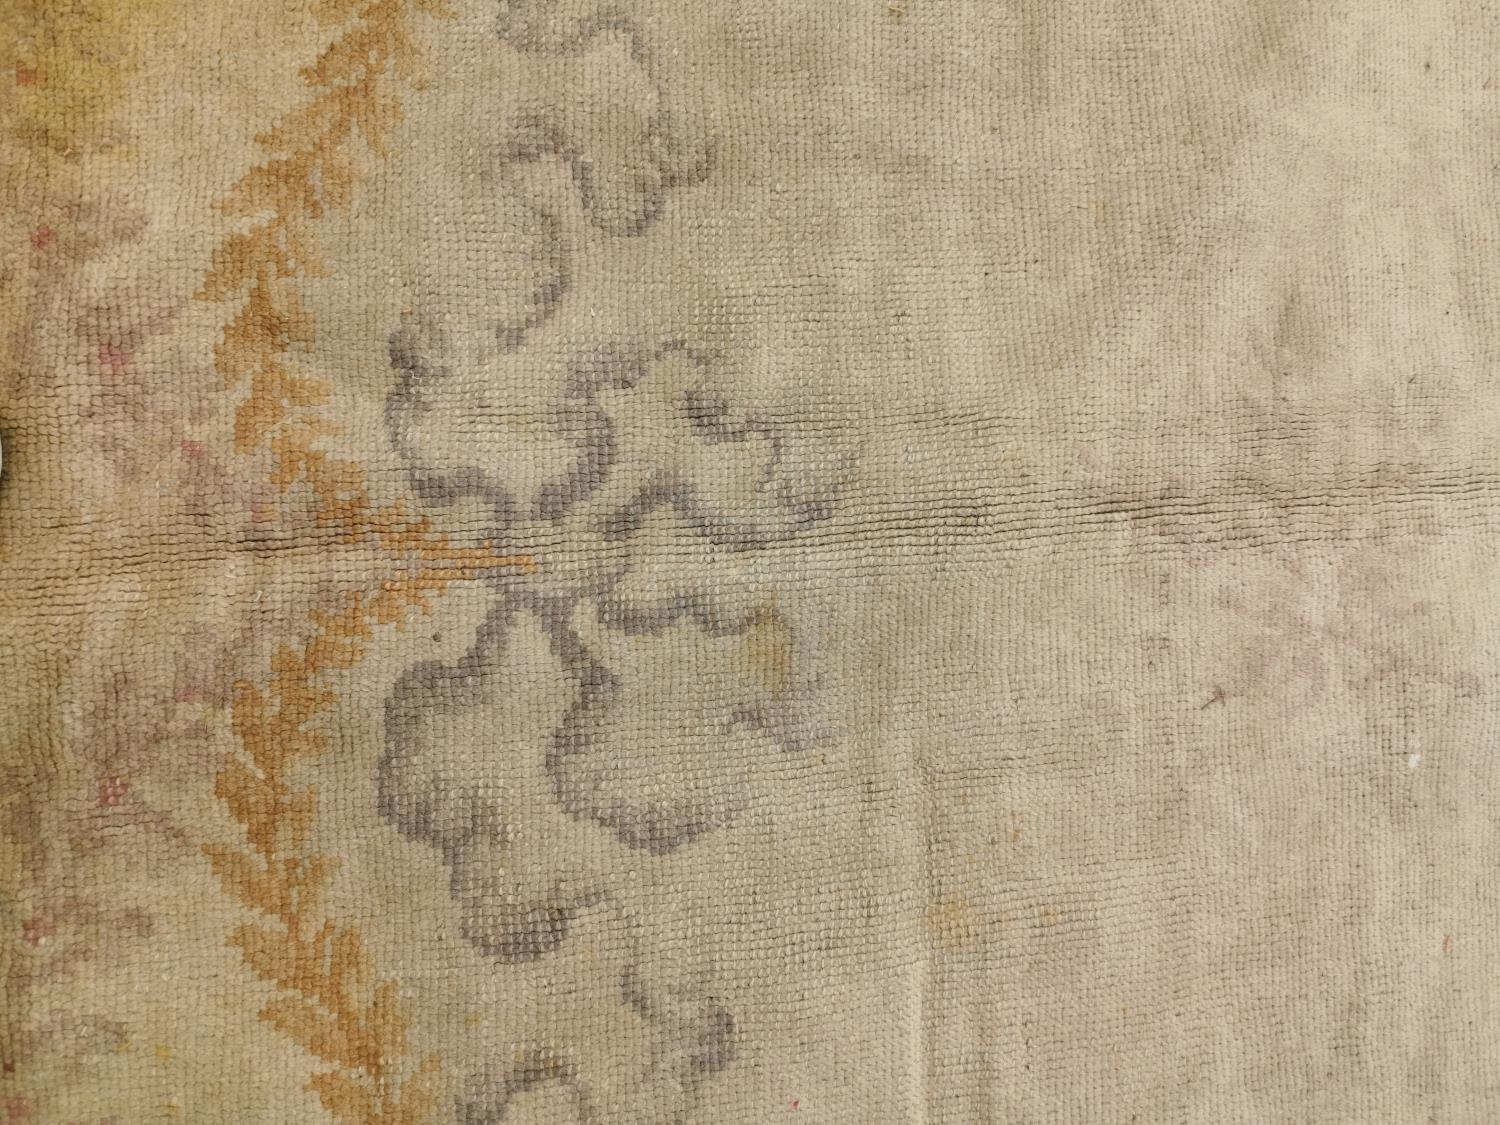 Large early 20th C. hand woven oval carpet. - Image 4 of 6